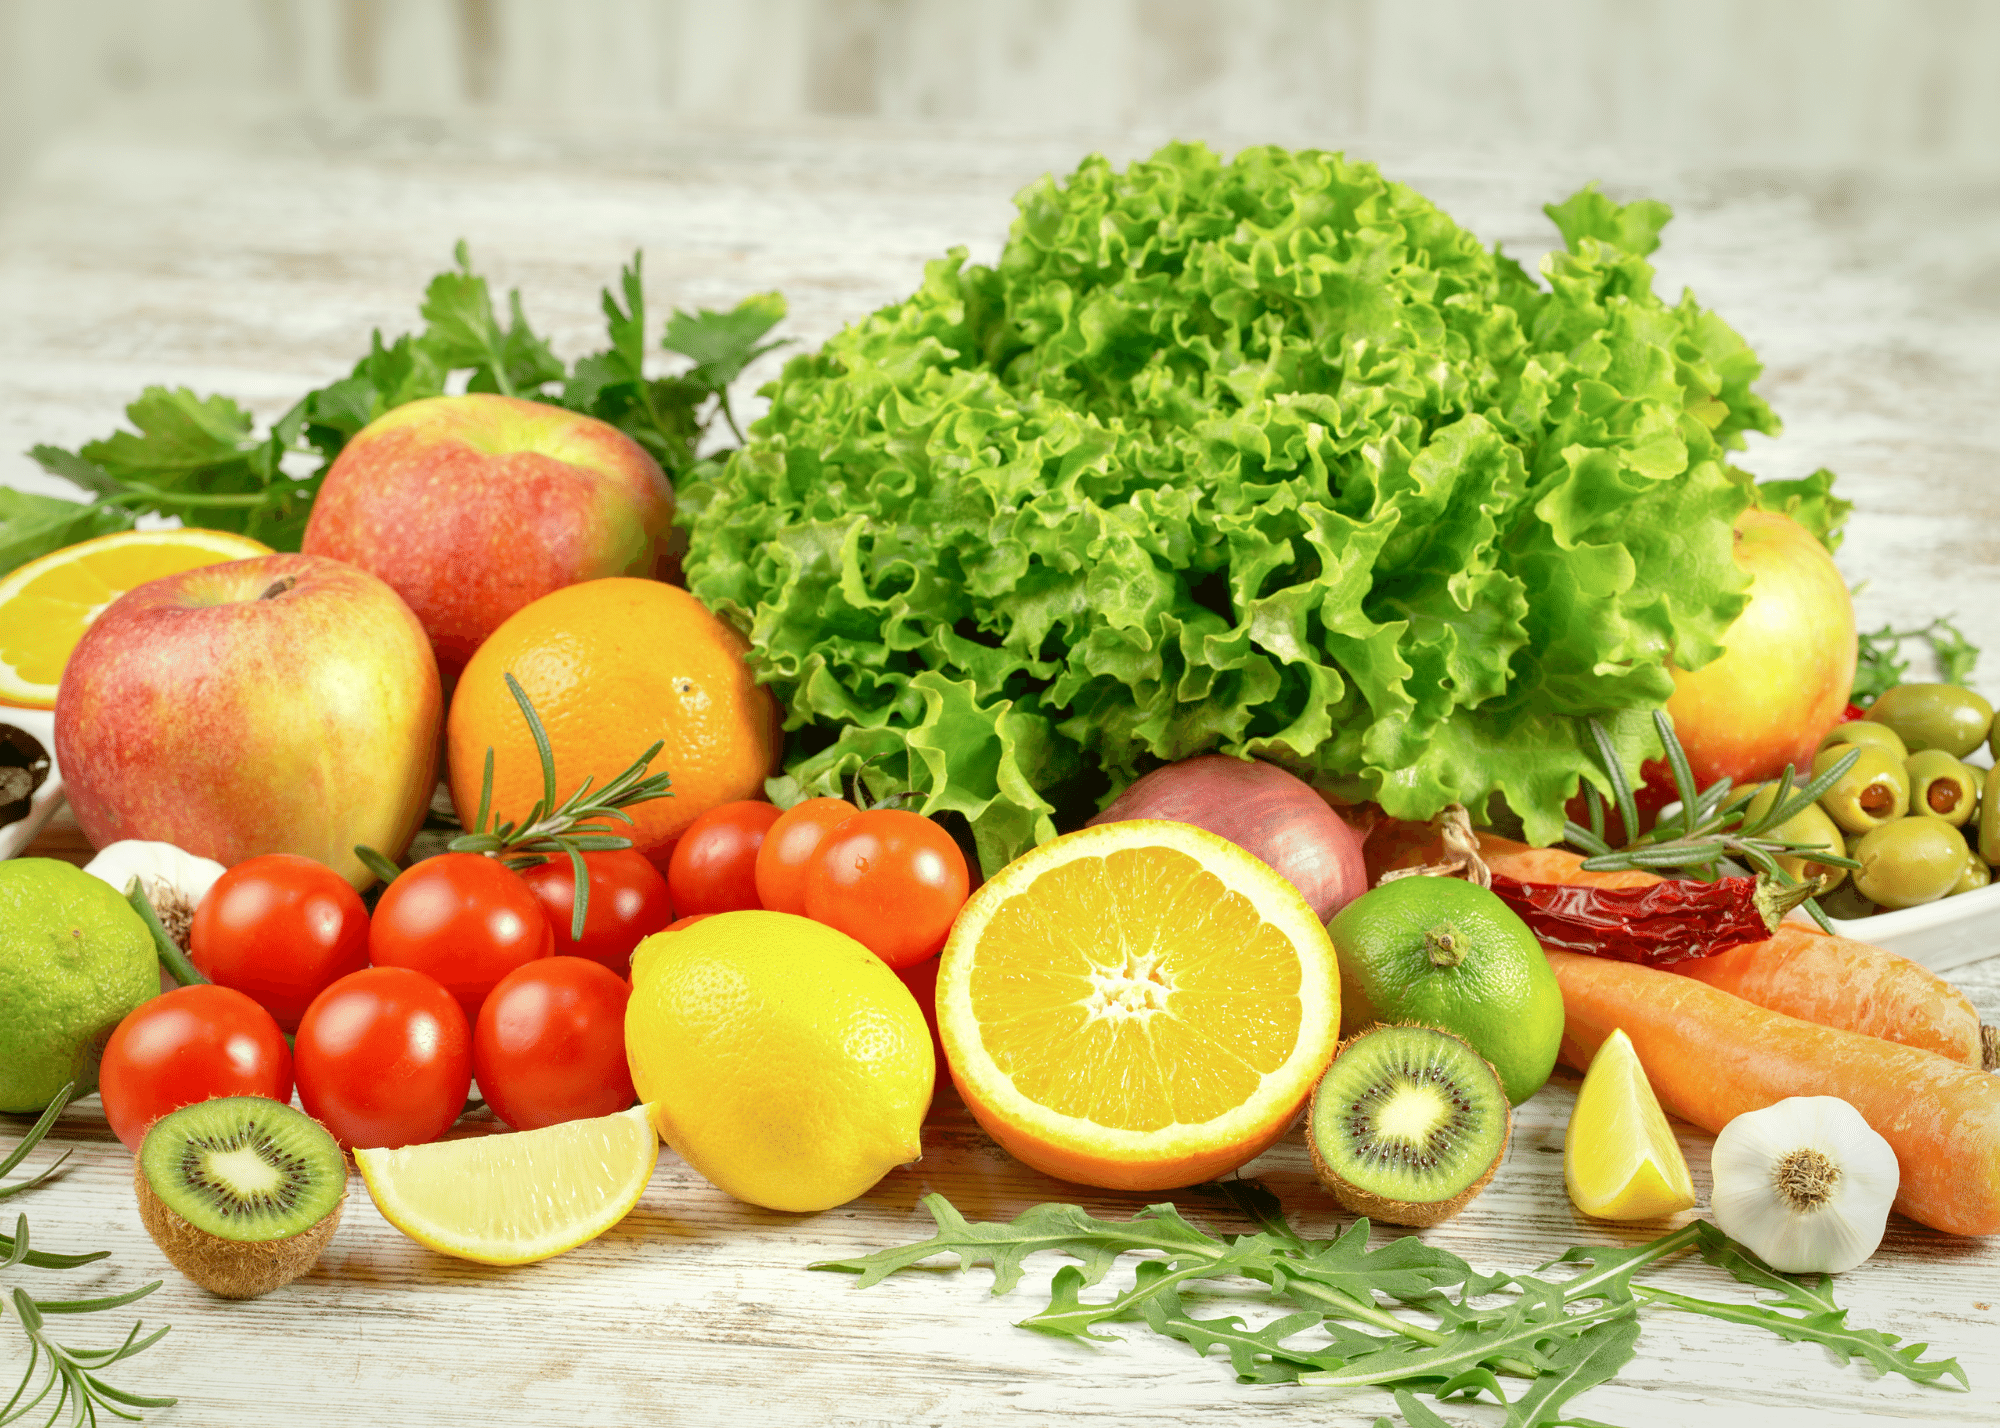 Healthy Eating - How to Eat Clean, Dealing With Barriers to a Healthy Diet